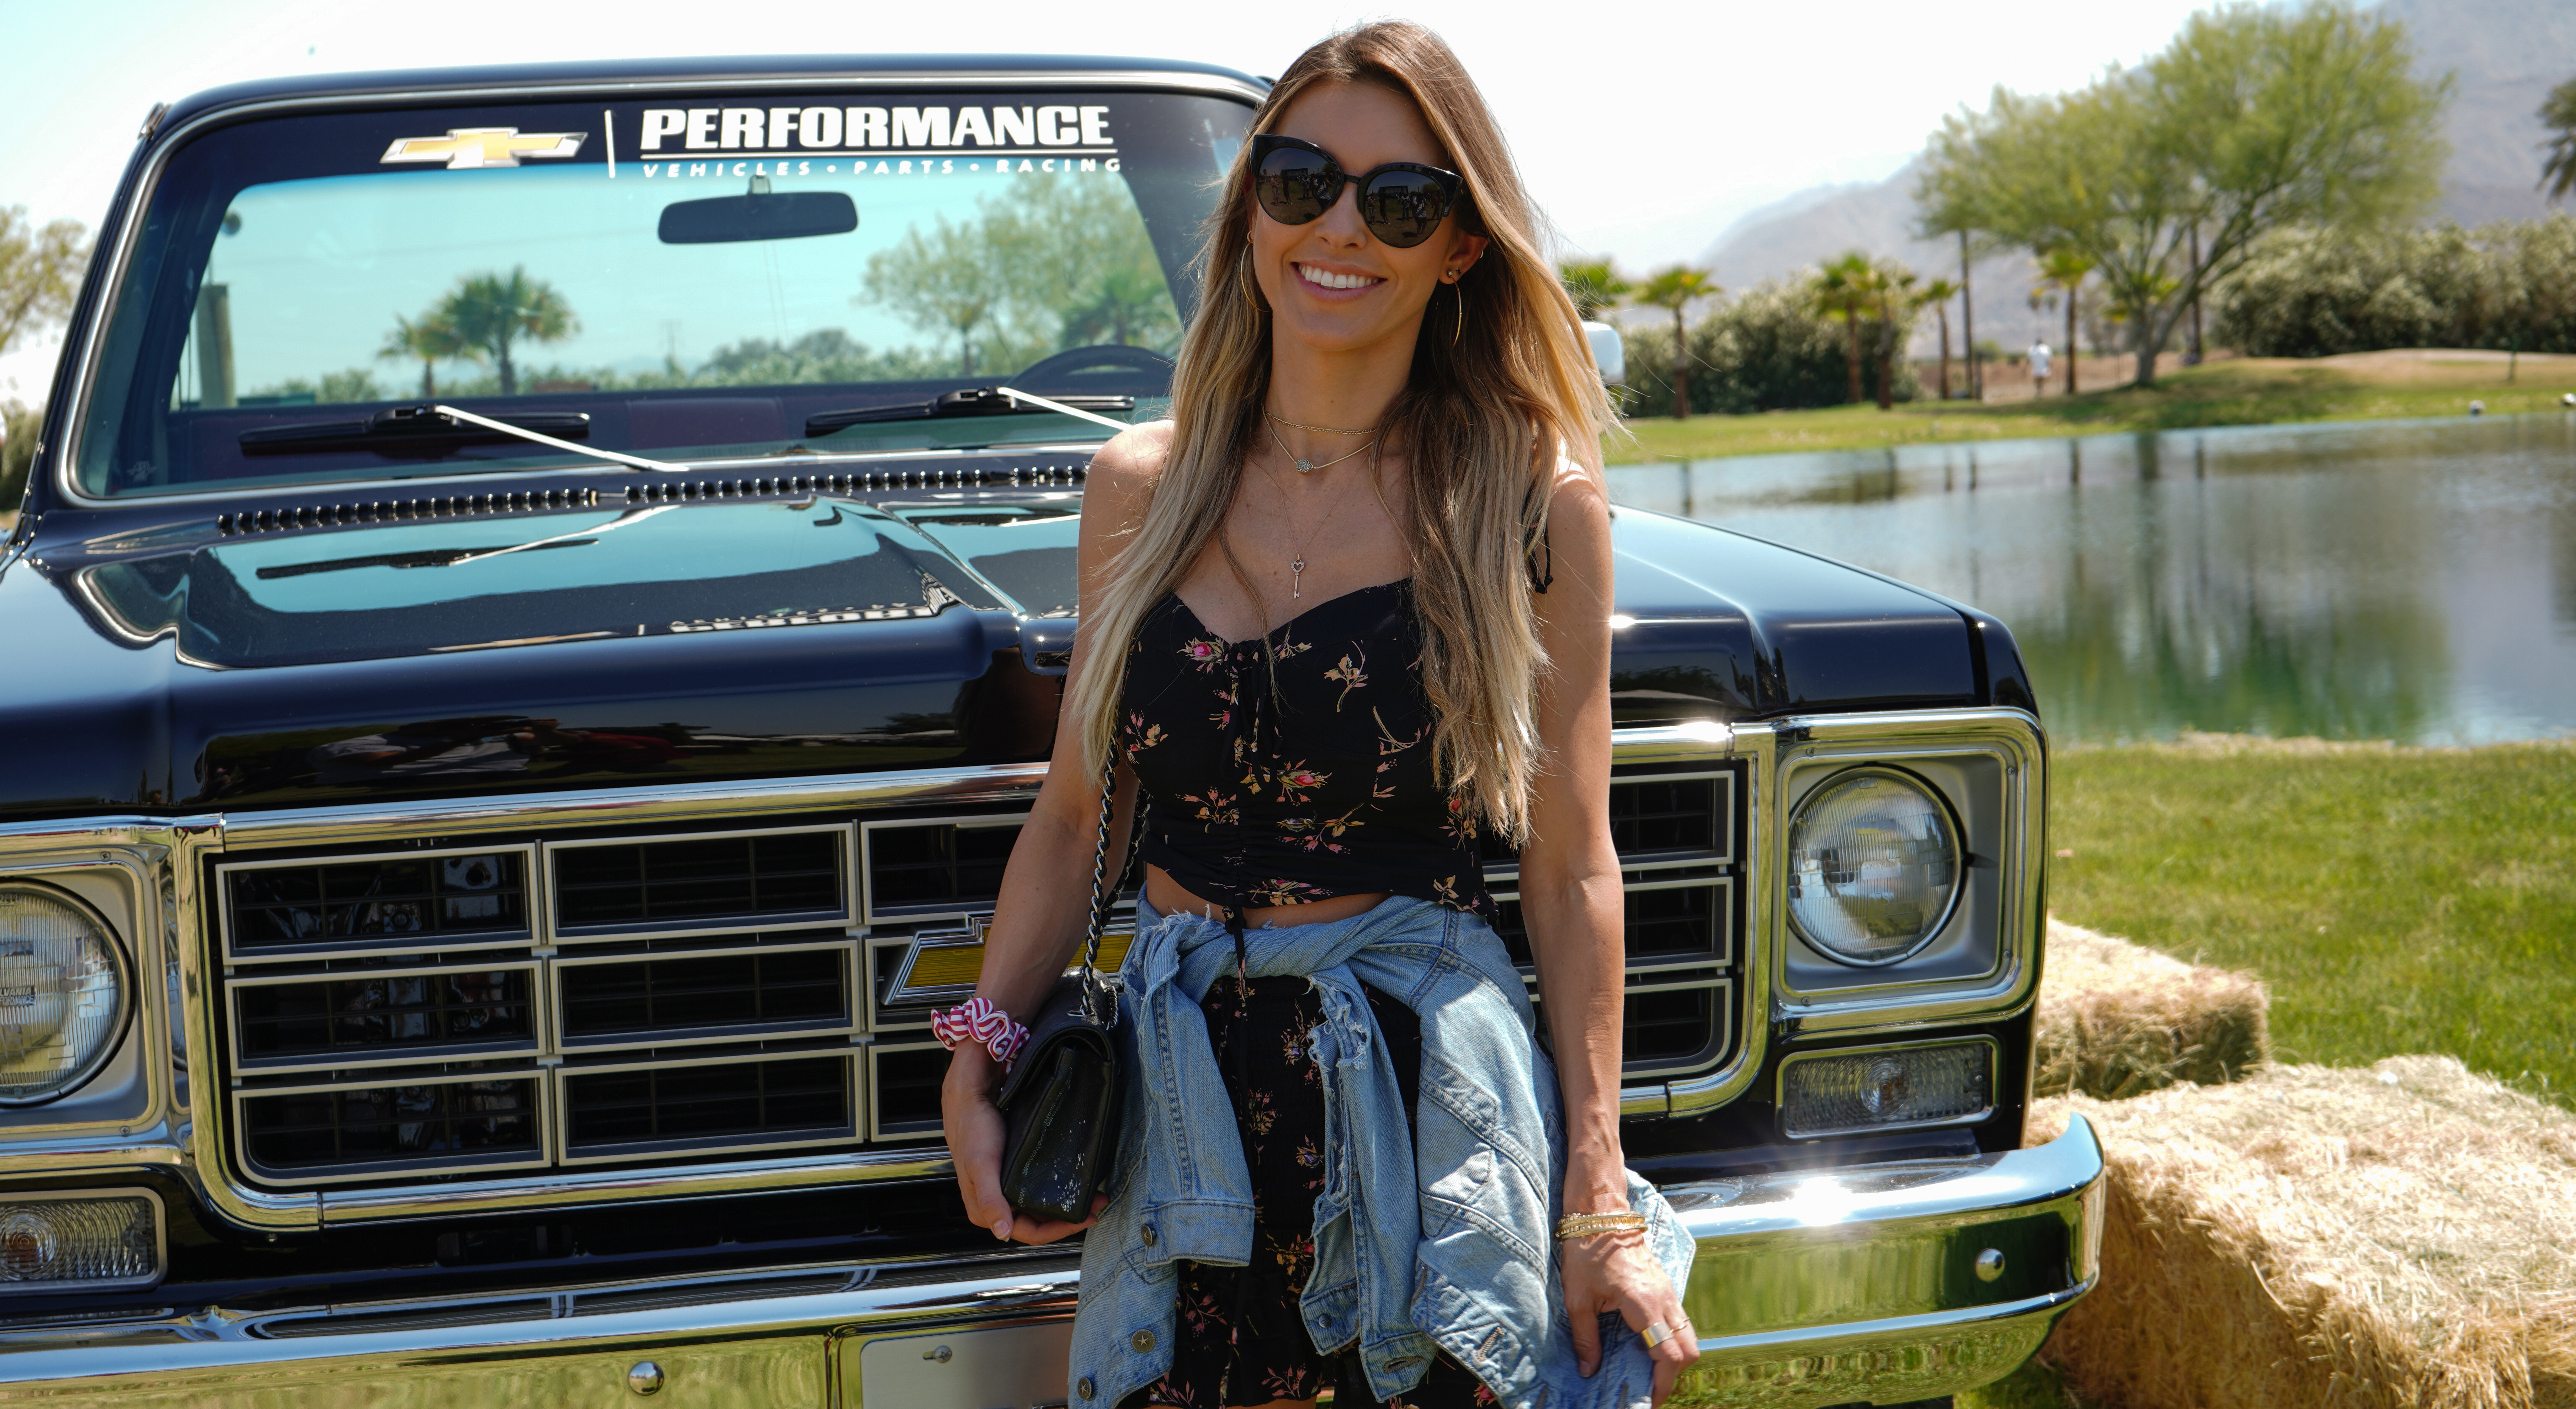 Audrina Patridge attends the celebration of 100 Years of Chevy Trucks at the Boots On Stage 3rd Annual Shindig, In The Desert Presented by Chevrolet on April 29, 2018.